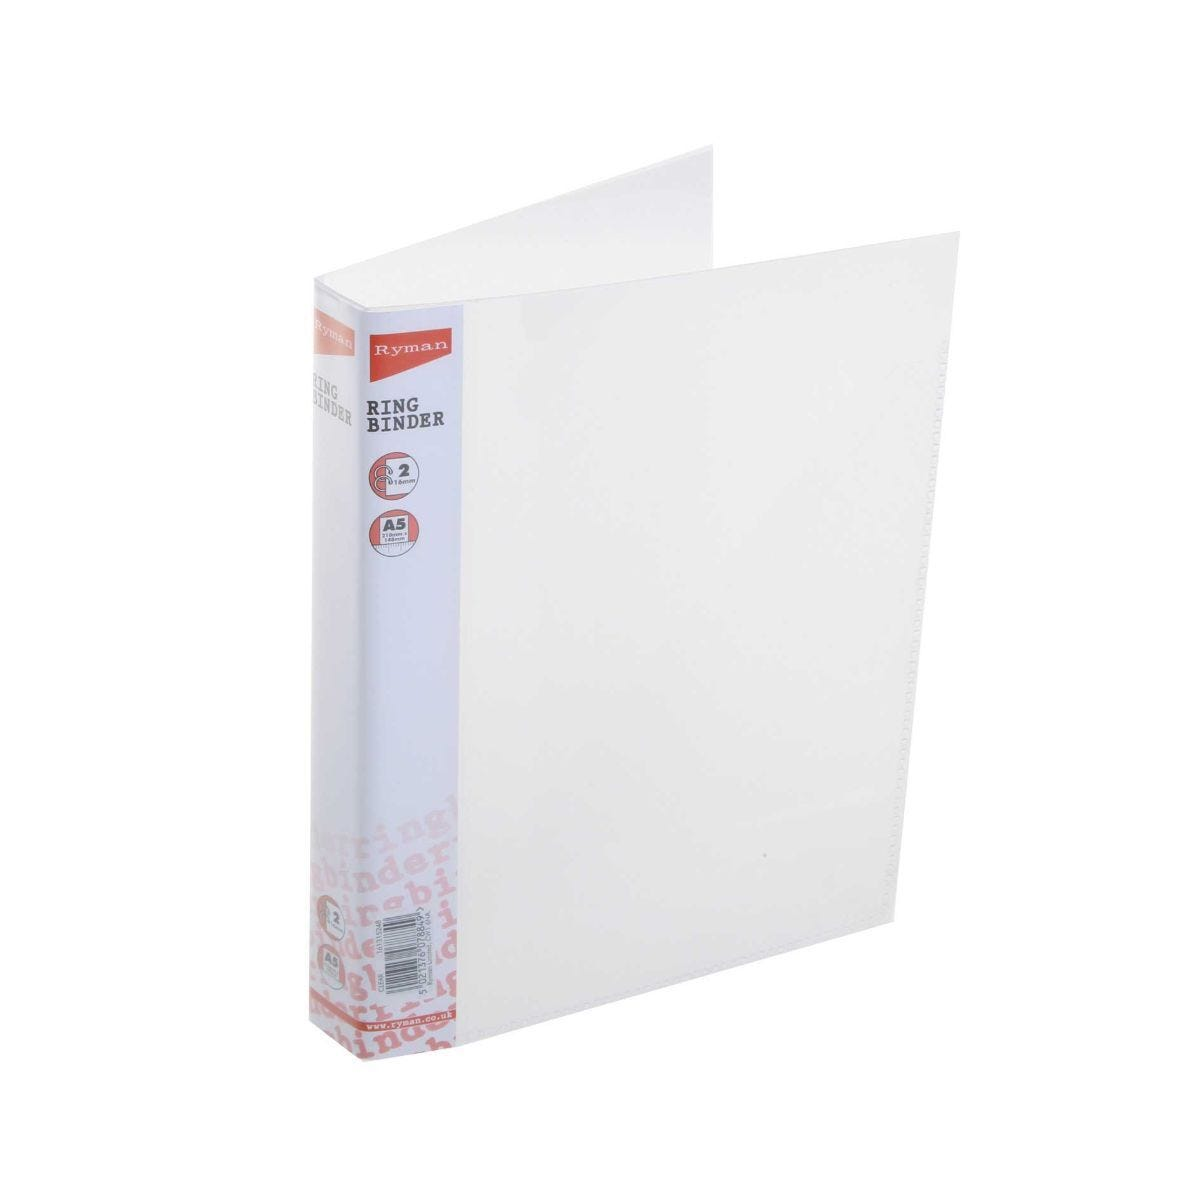 Ryman Ringbinder A5 16mm Pack of 12 Clear